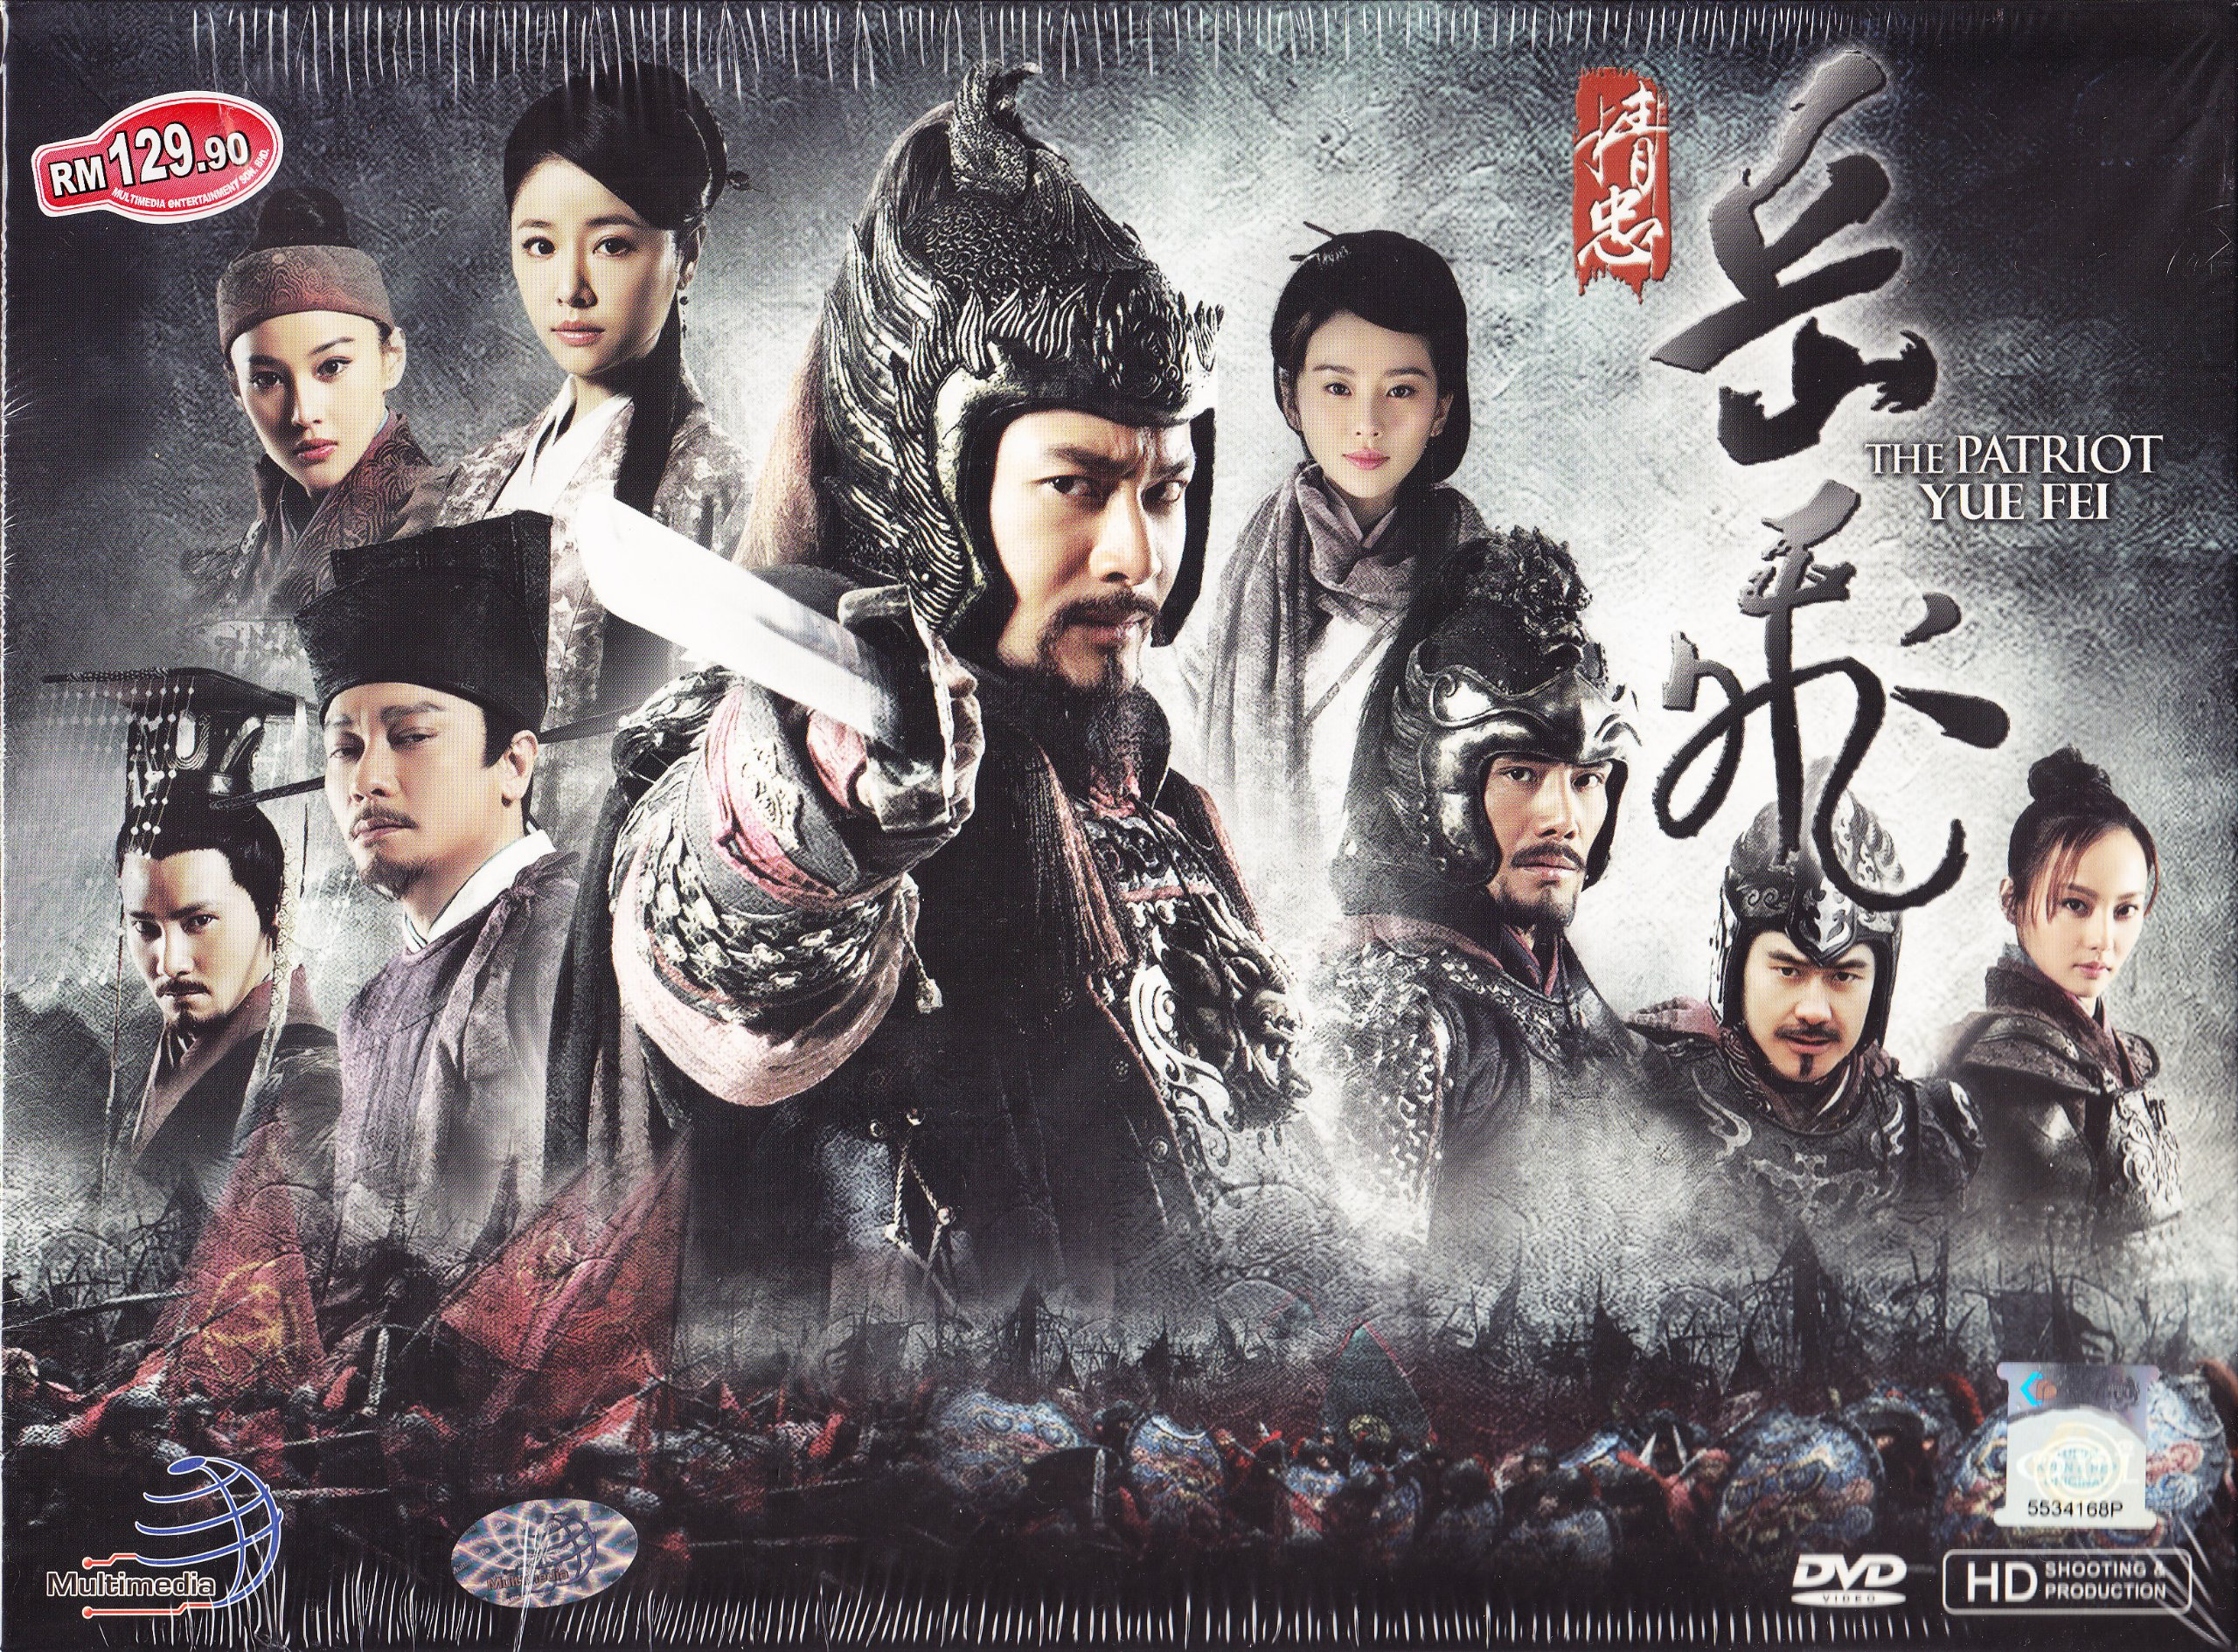 The Patriot Yue Fei (Chinese Tv Drama, 18-dvd Set, Episode 1-69 End) (2013) PAL All Region